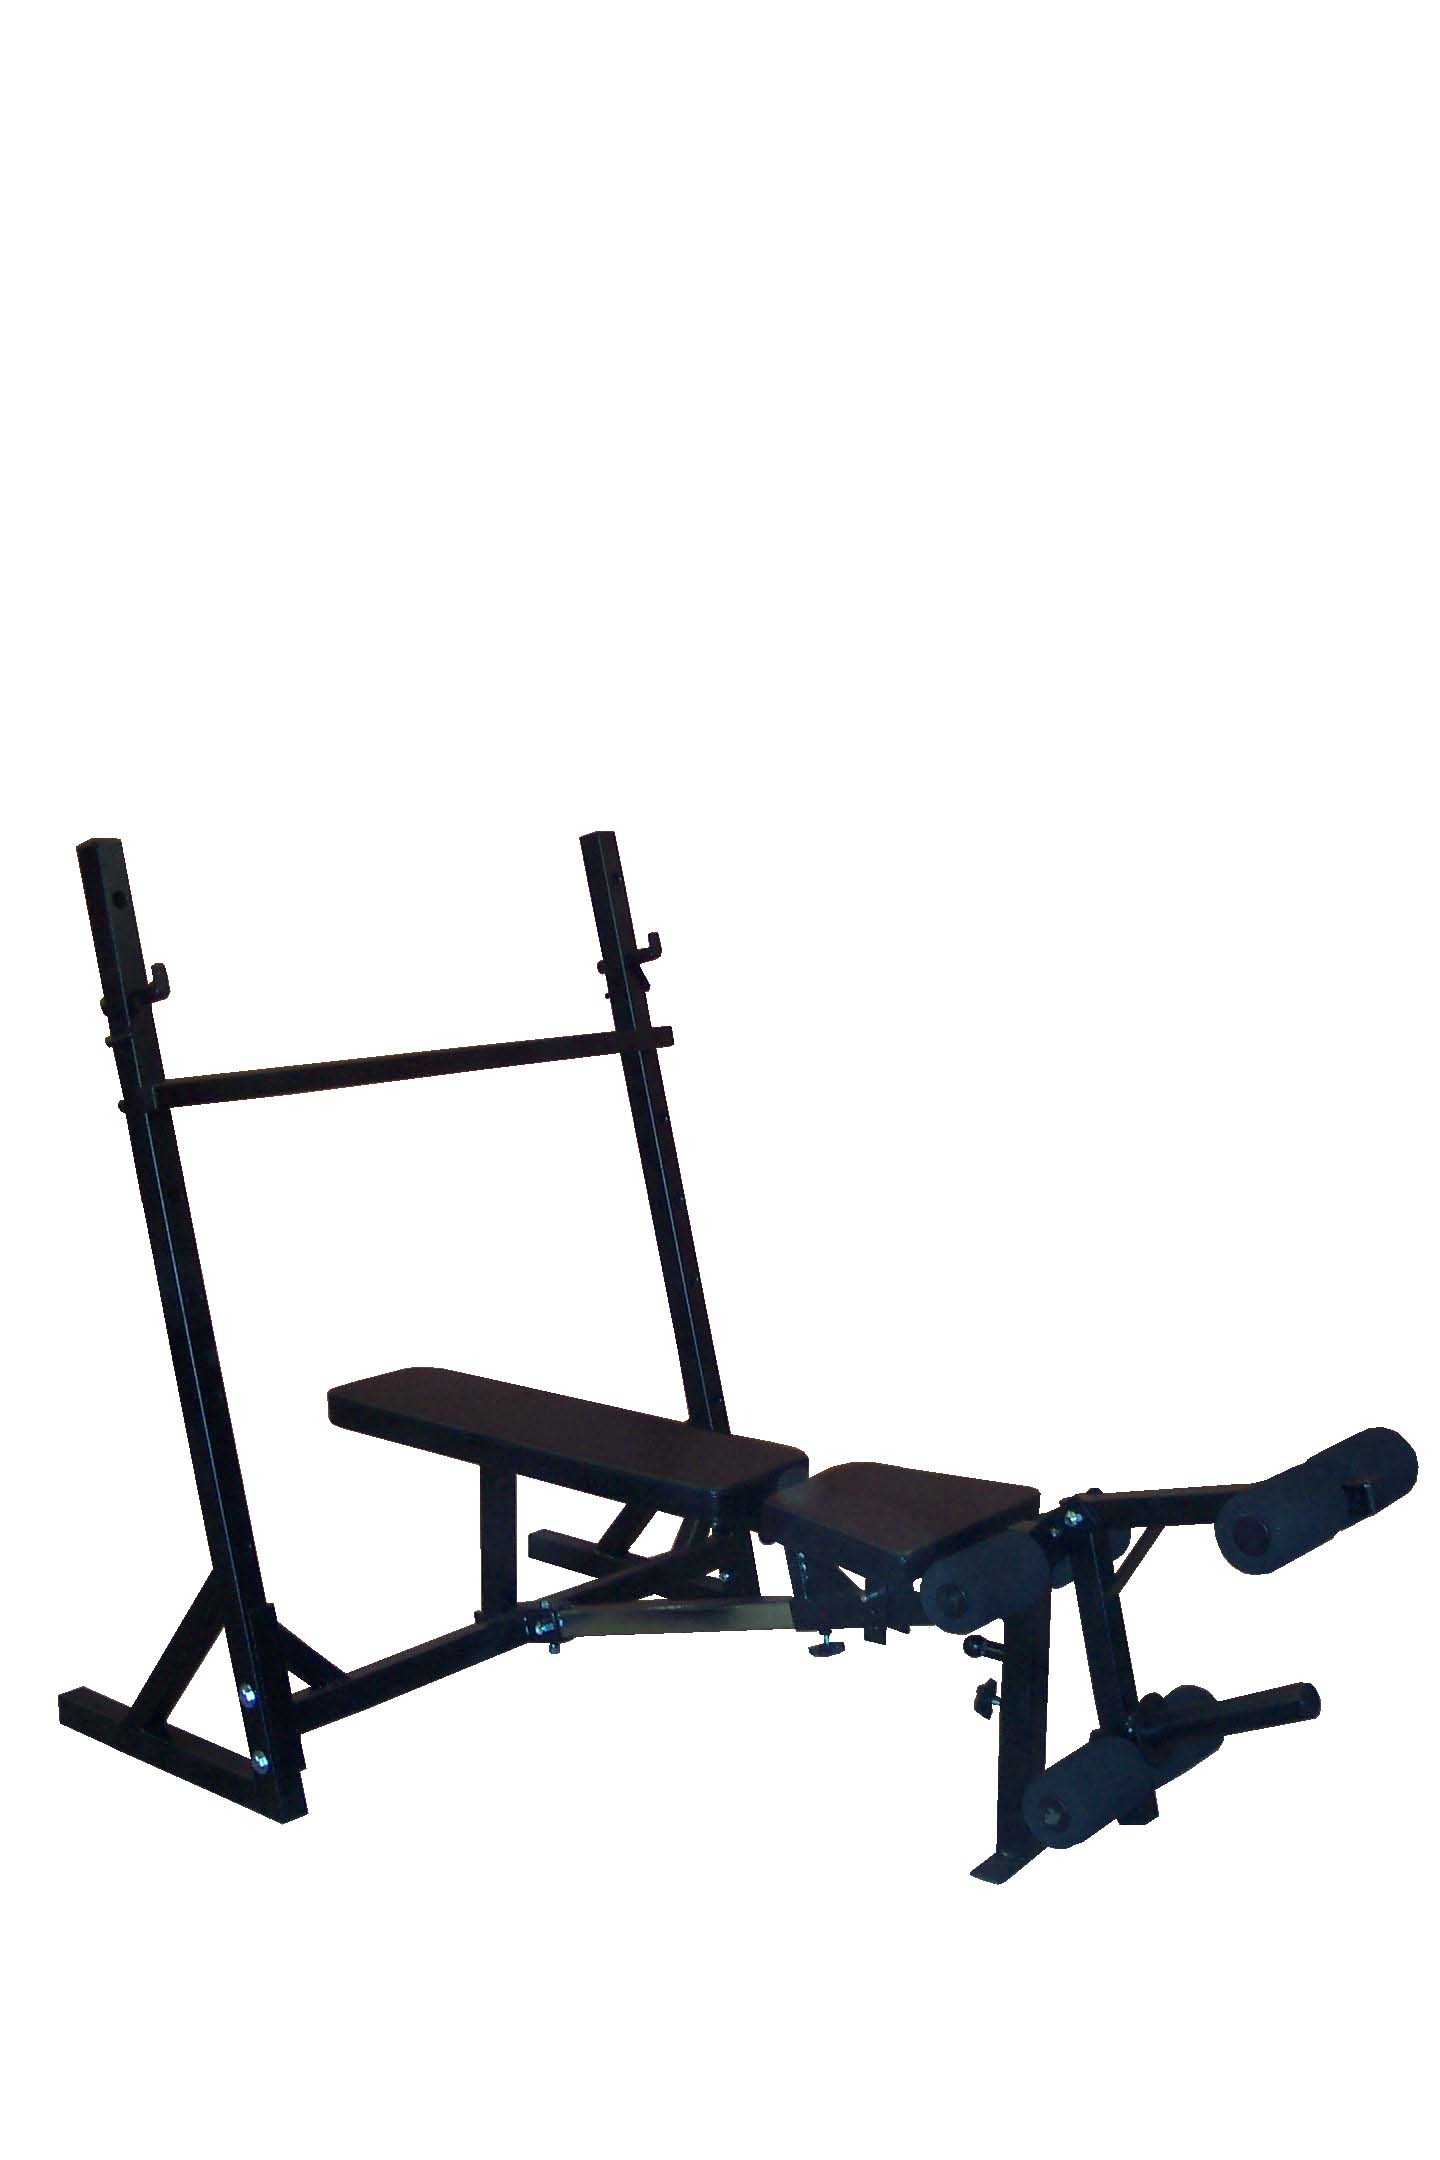 MAX#CBP1 Incline-Decline-Flat Bench